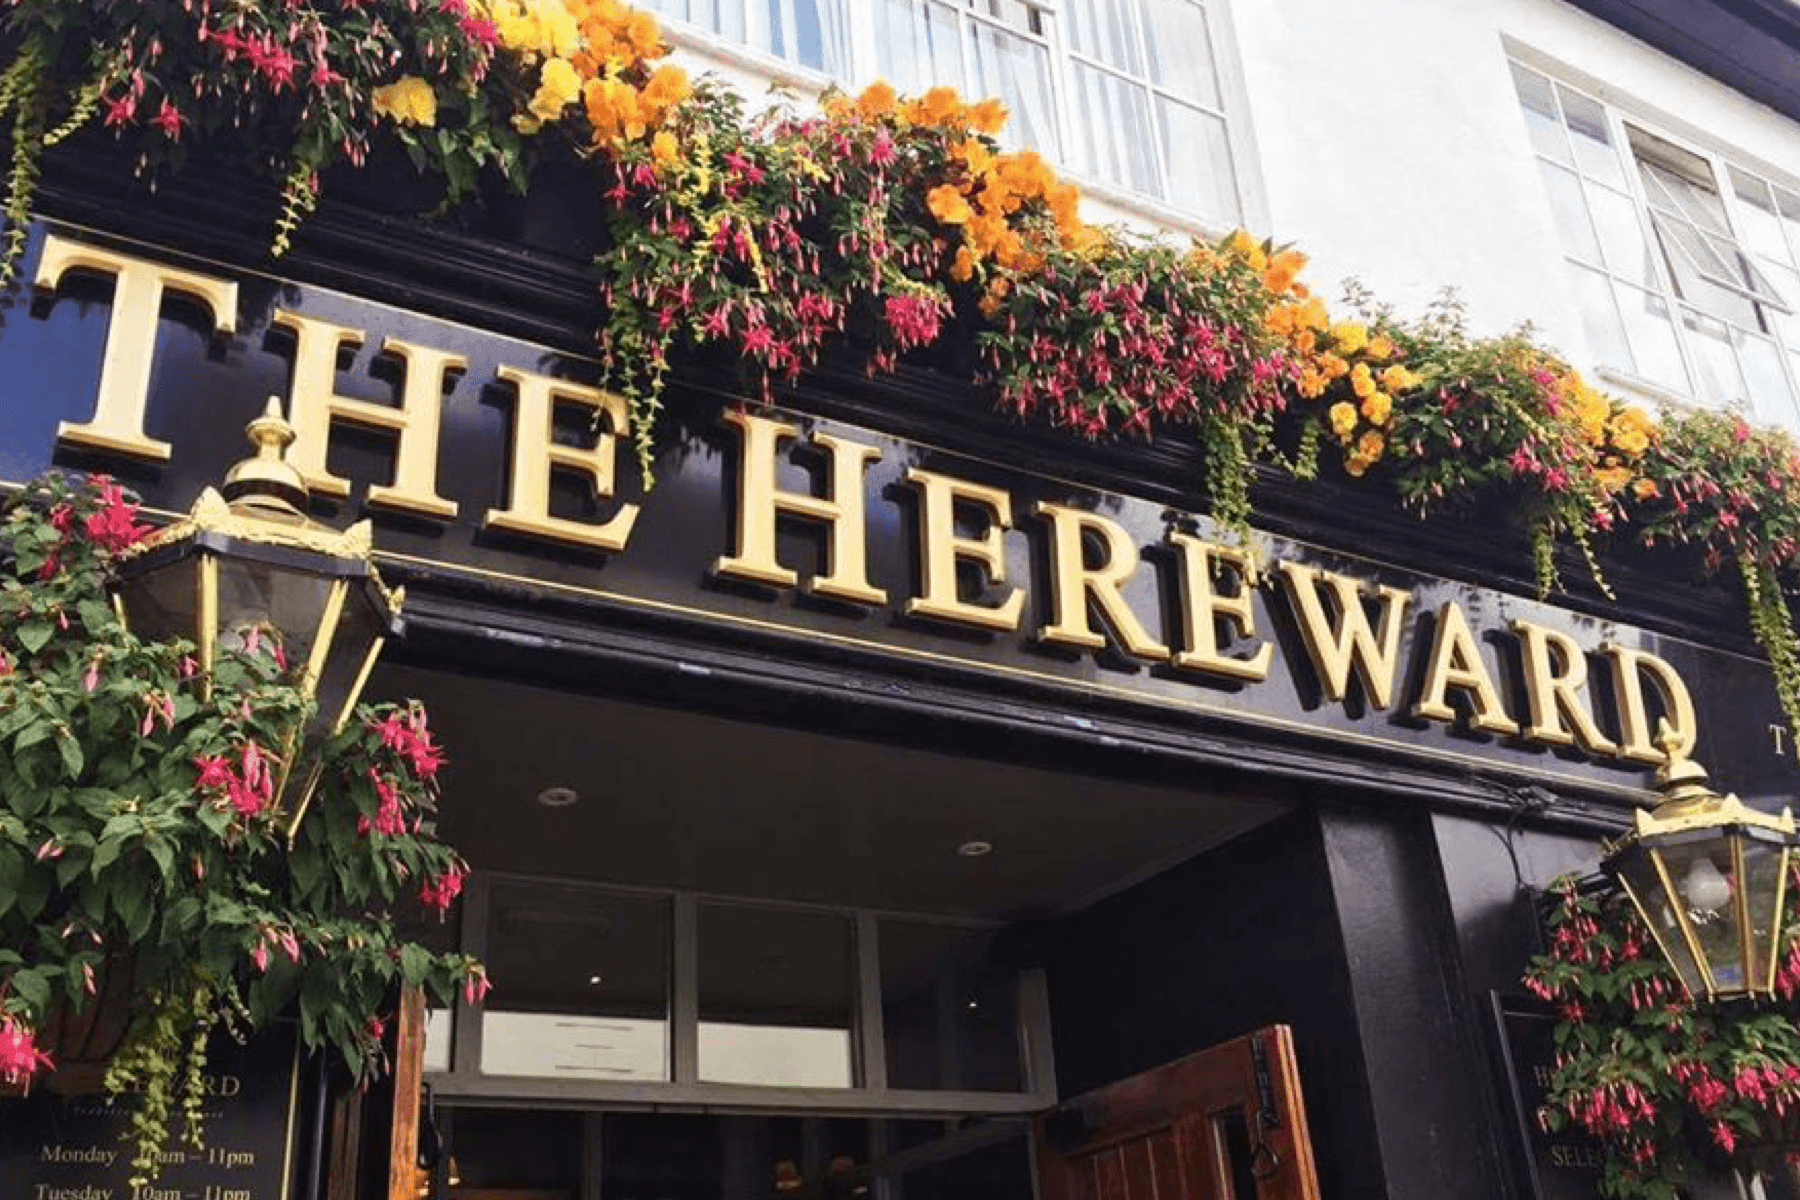 The Hereward